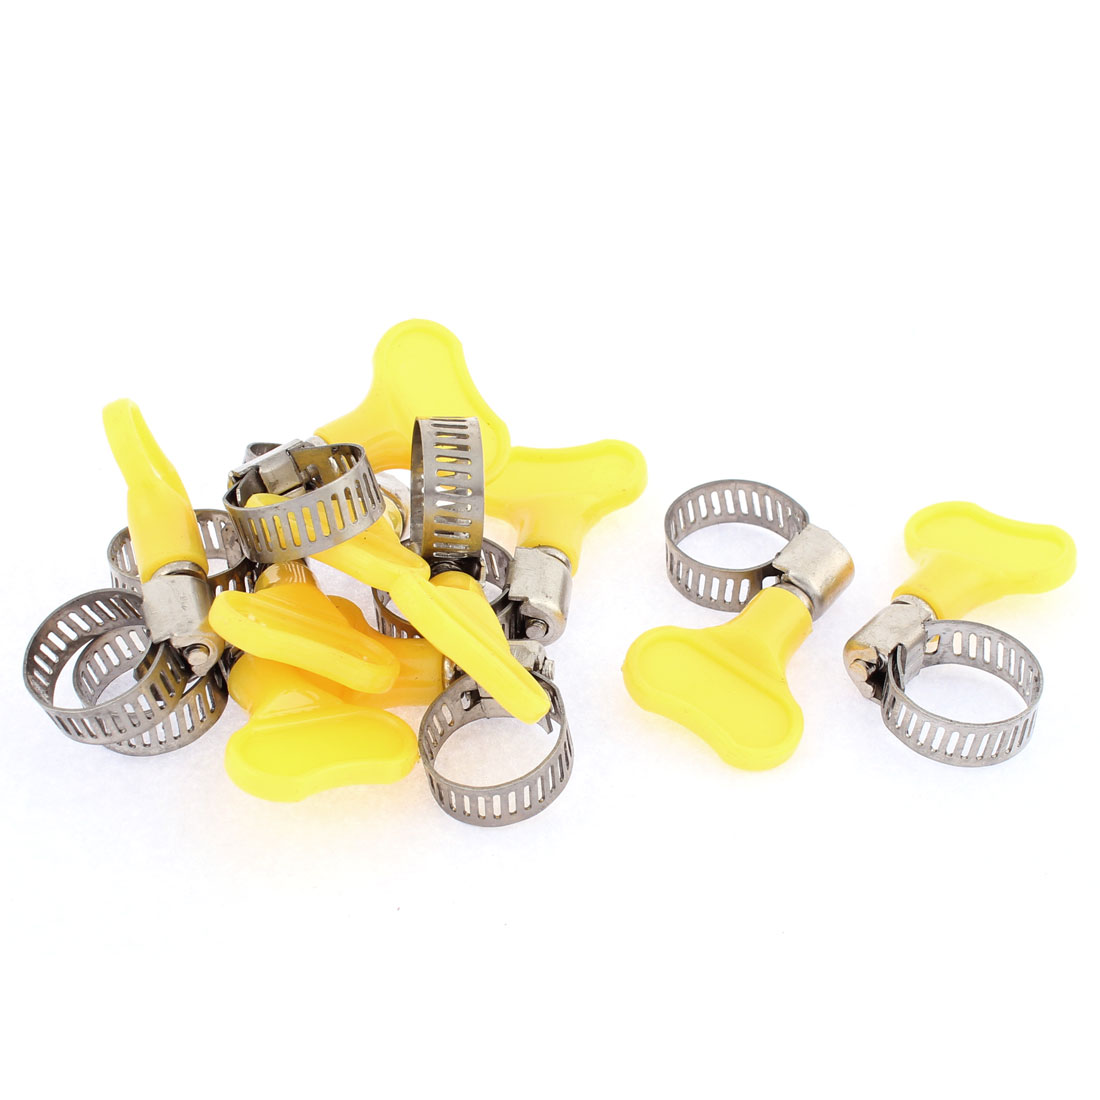 9-16mm Range Band Stainless Steel Worm Gear Fuel Line Hose Clamps 10 Pcs